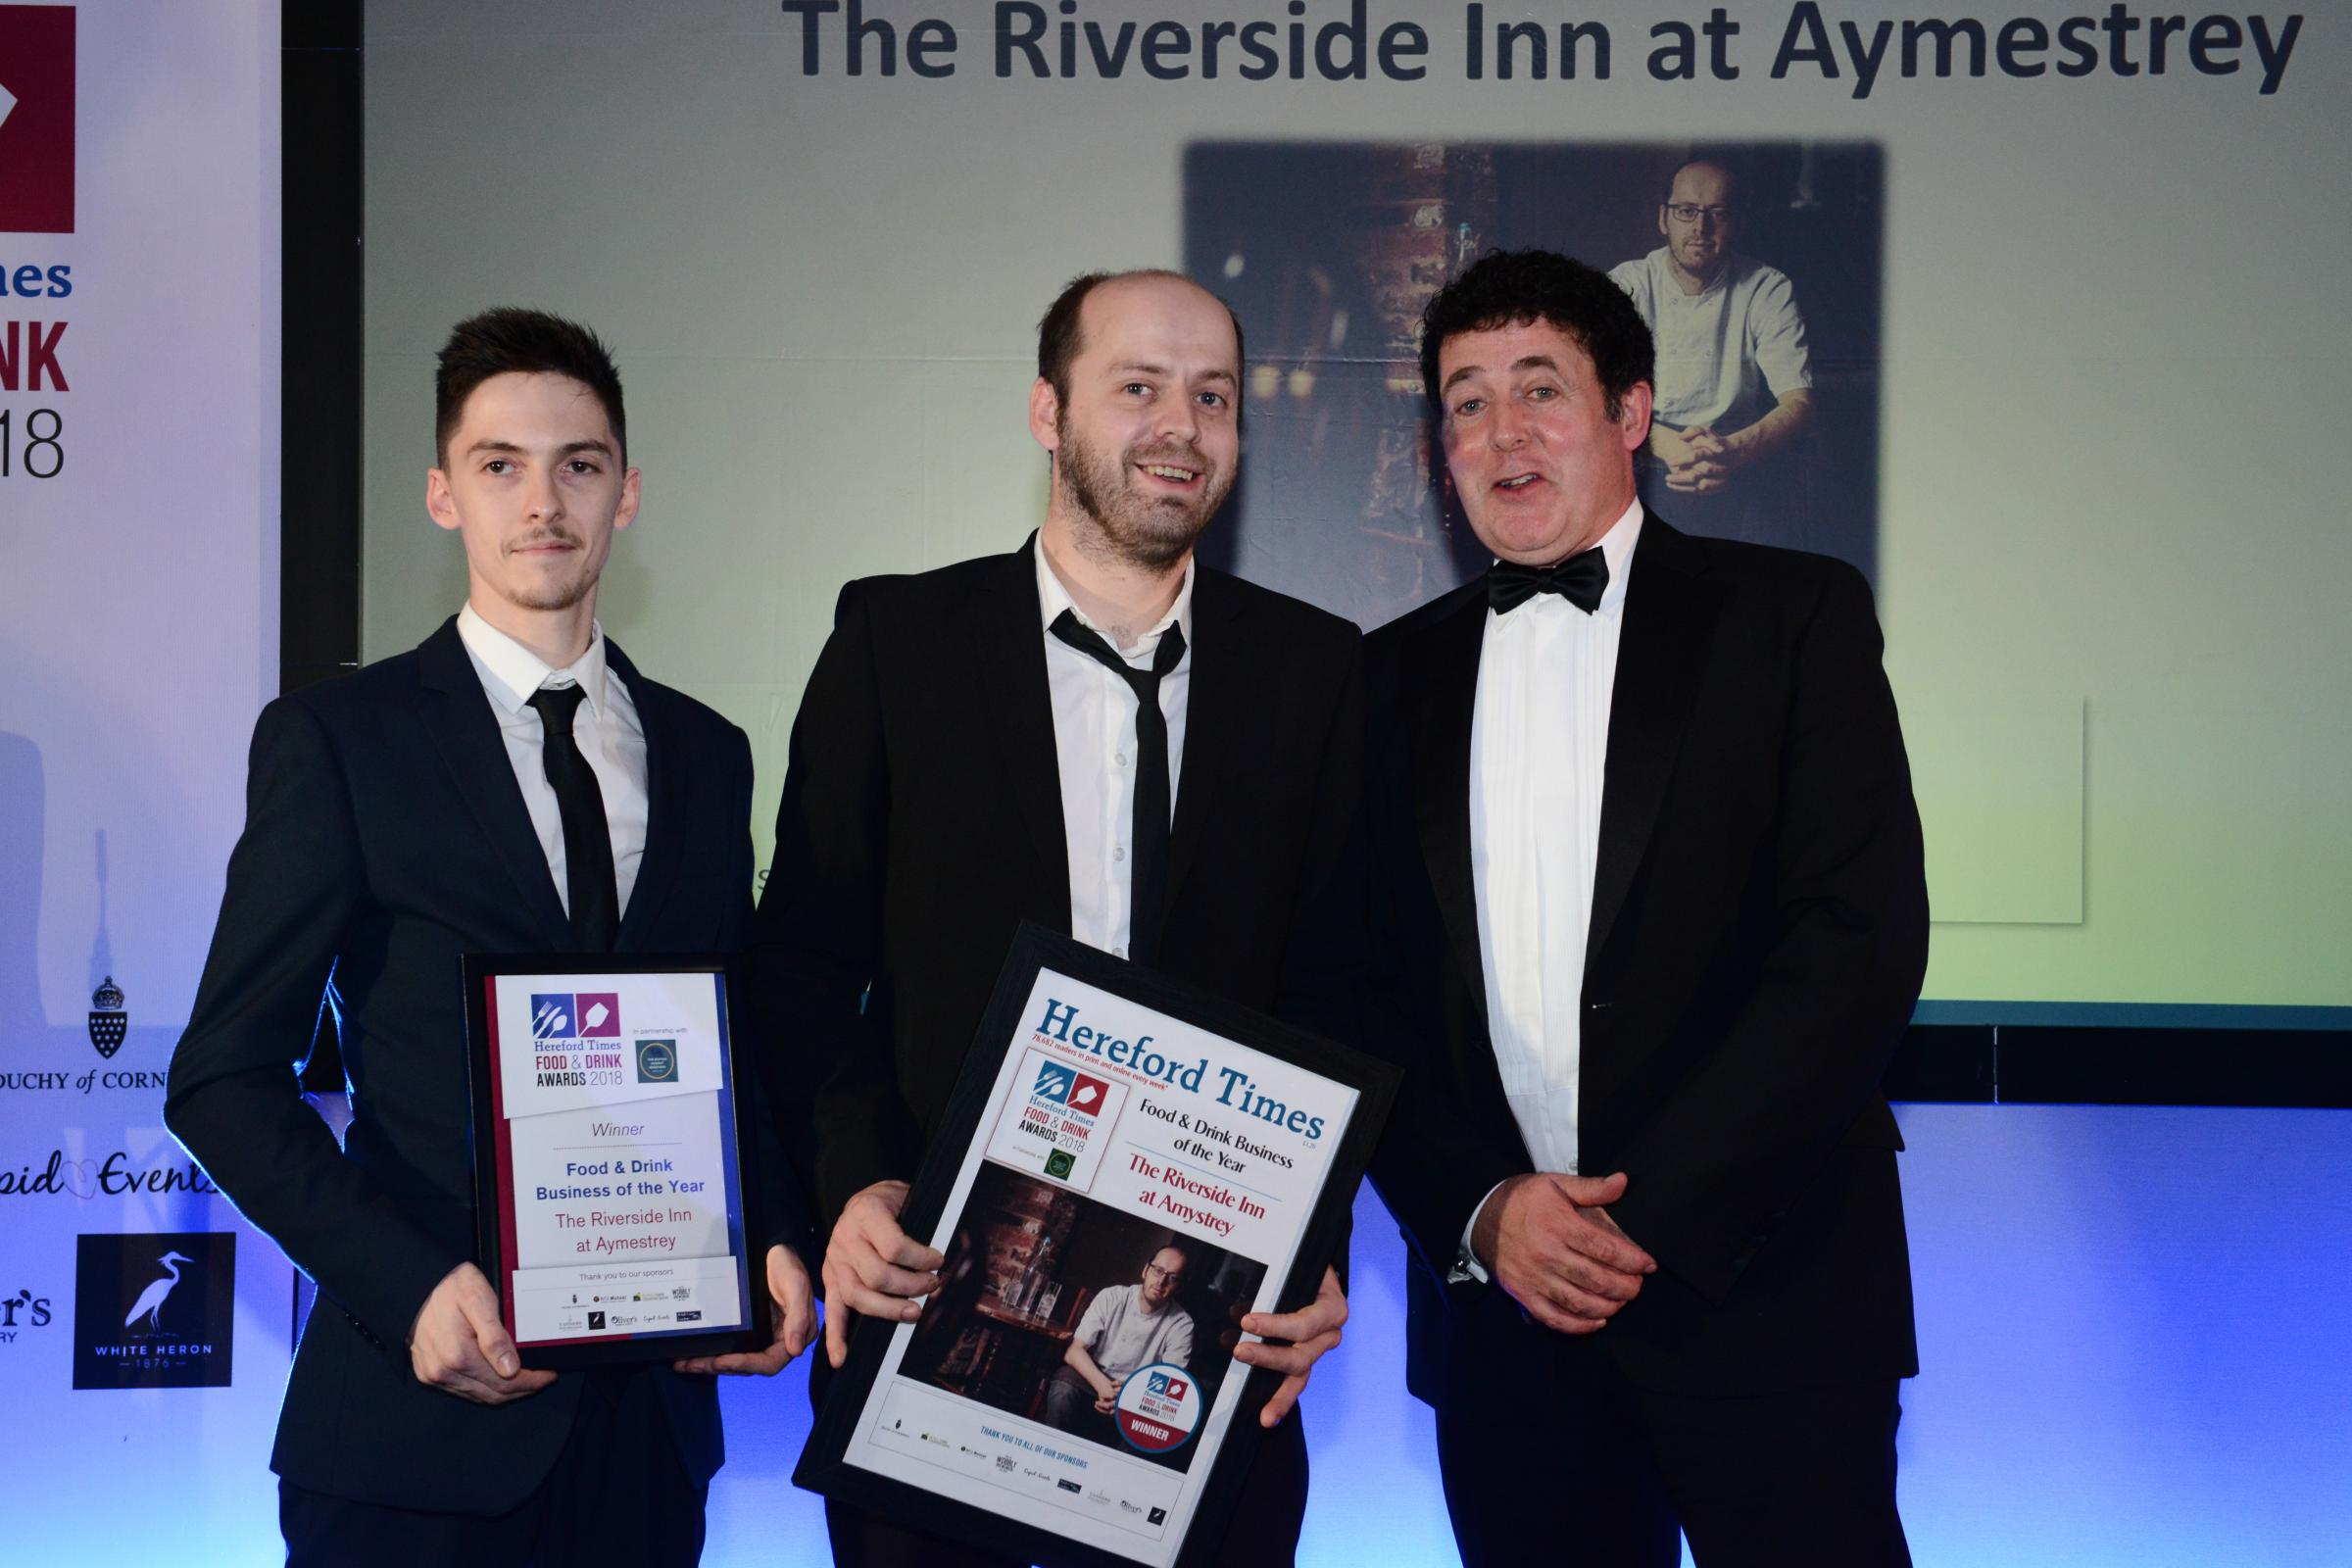 Elliott Foote and Andy Link from The Riverside Inn at Aymestrey collect the award from Darren Sockett of The Butter Market